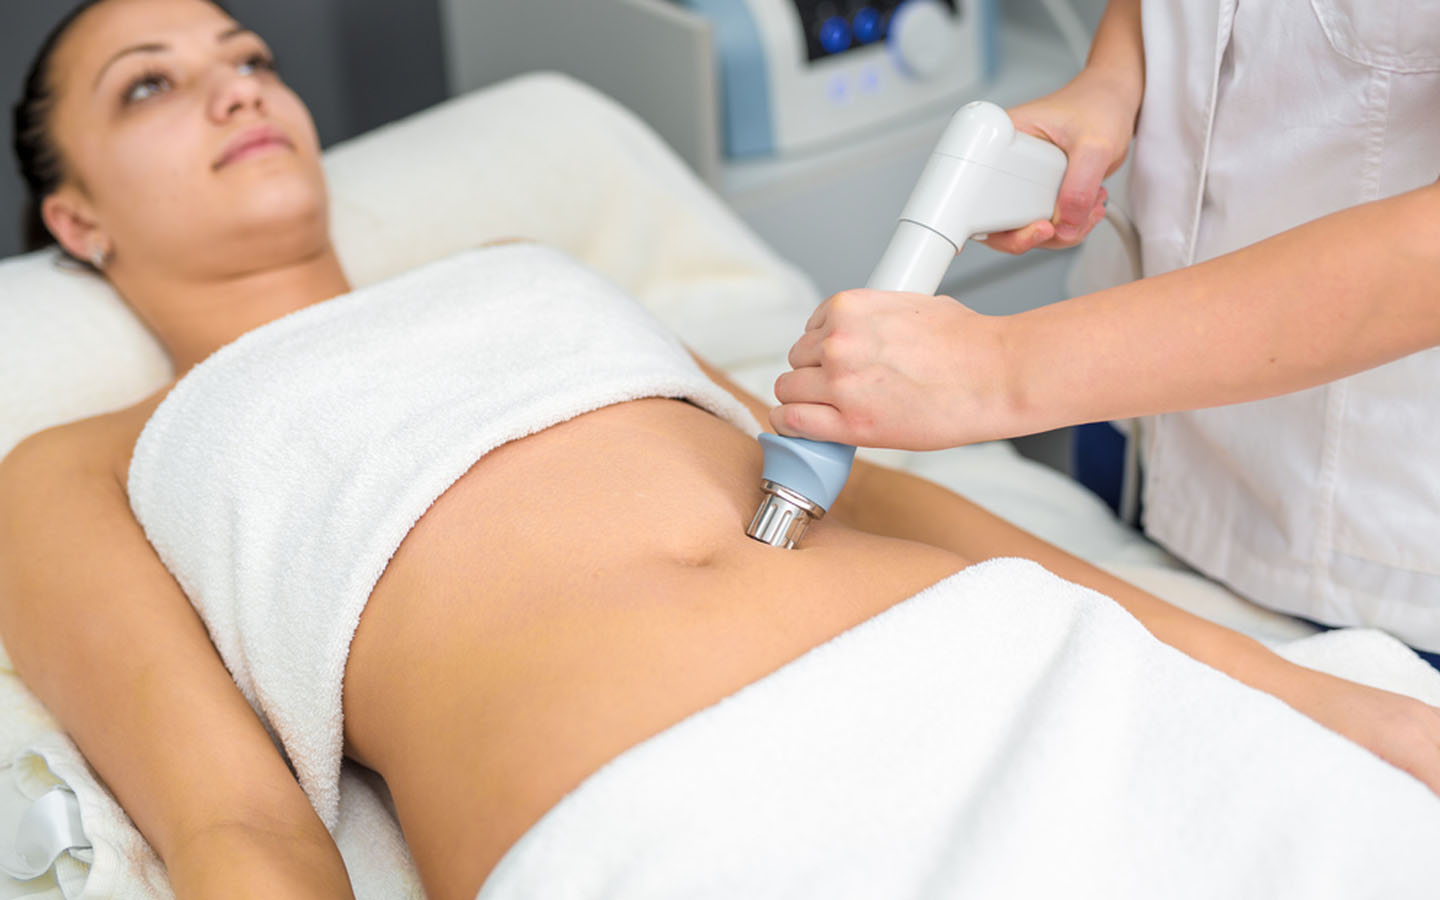 Anti-cellulite treatment at a clinic